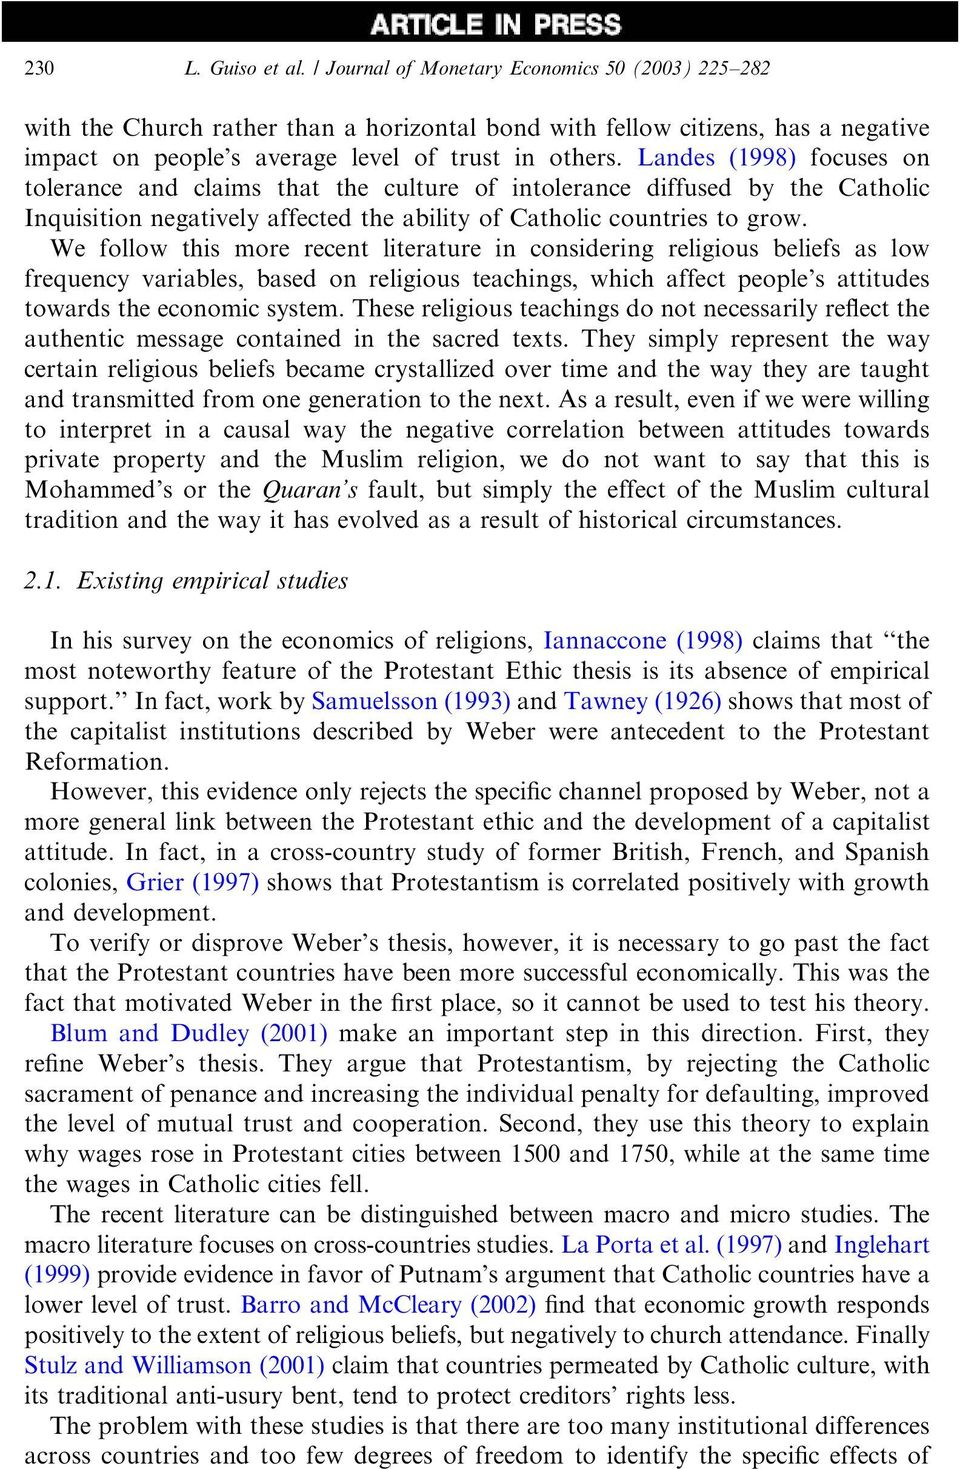 Landes (1998) focuses on tolerance andclaims that the culture of intolerance diffusedby the Catholic Inquisition negatively affectedthe ability of Catholic countries to grow.